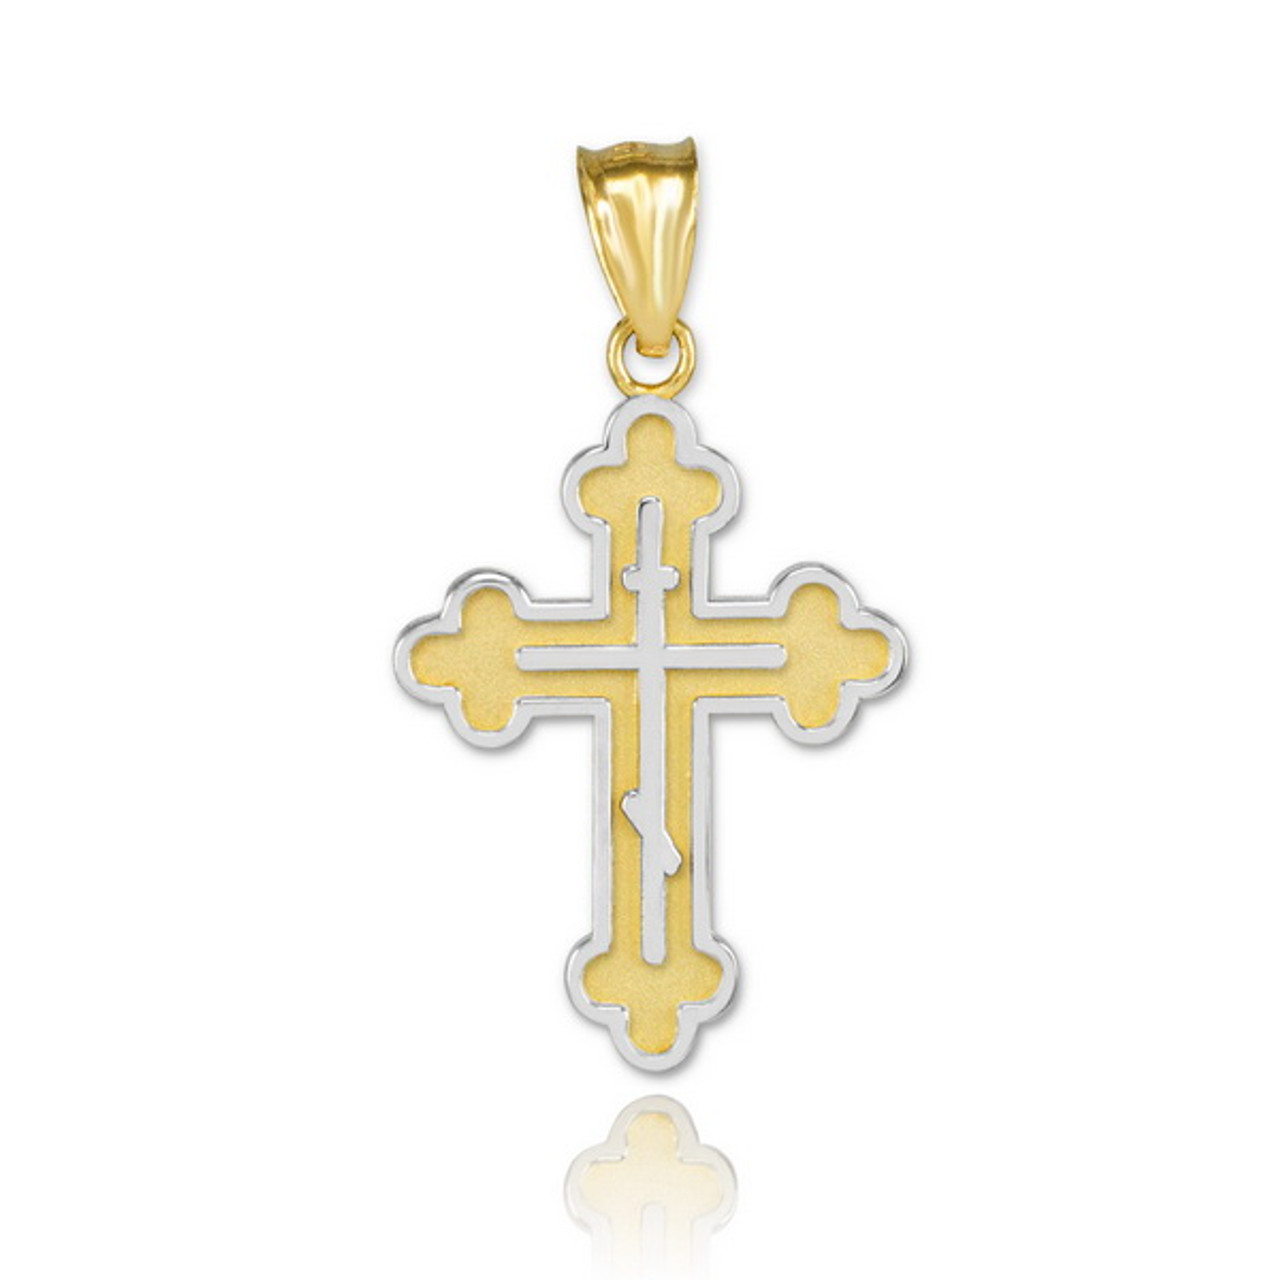 Solid 14K White Gold Filigree Eastern Orthodox Cross Charm Pendant Necklace